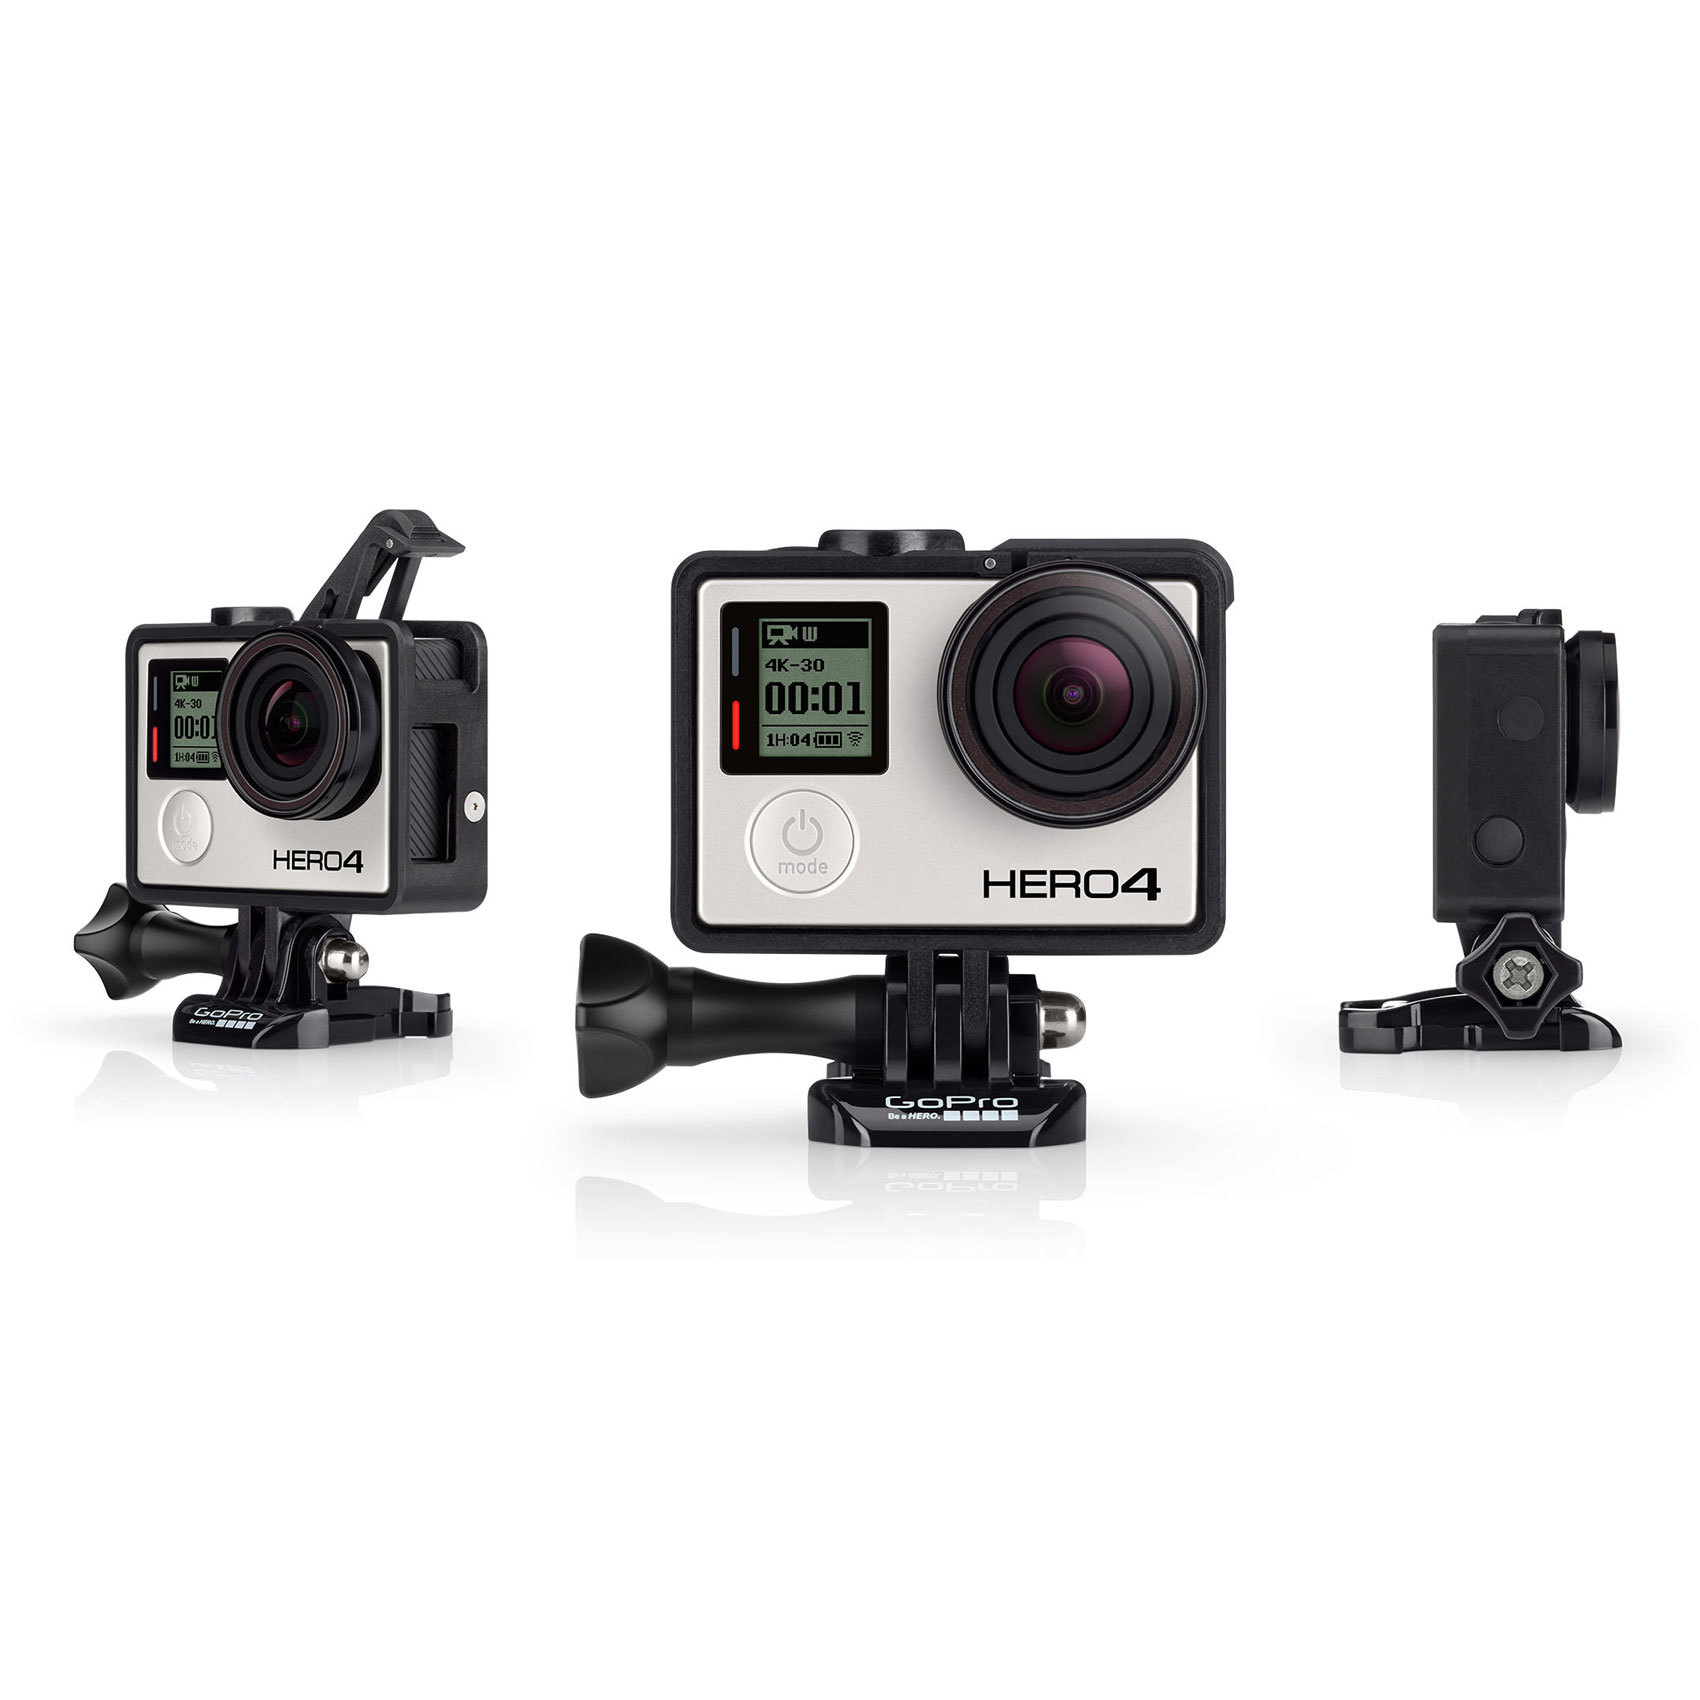 FRAME MOUNT ANDFR-301 GO PRO